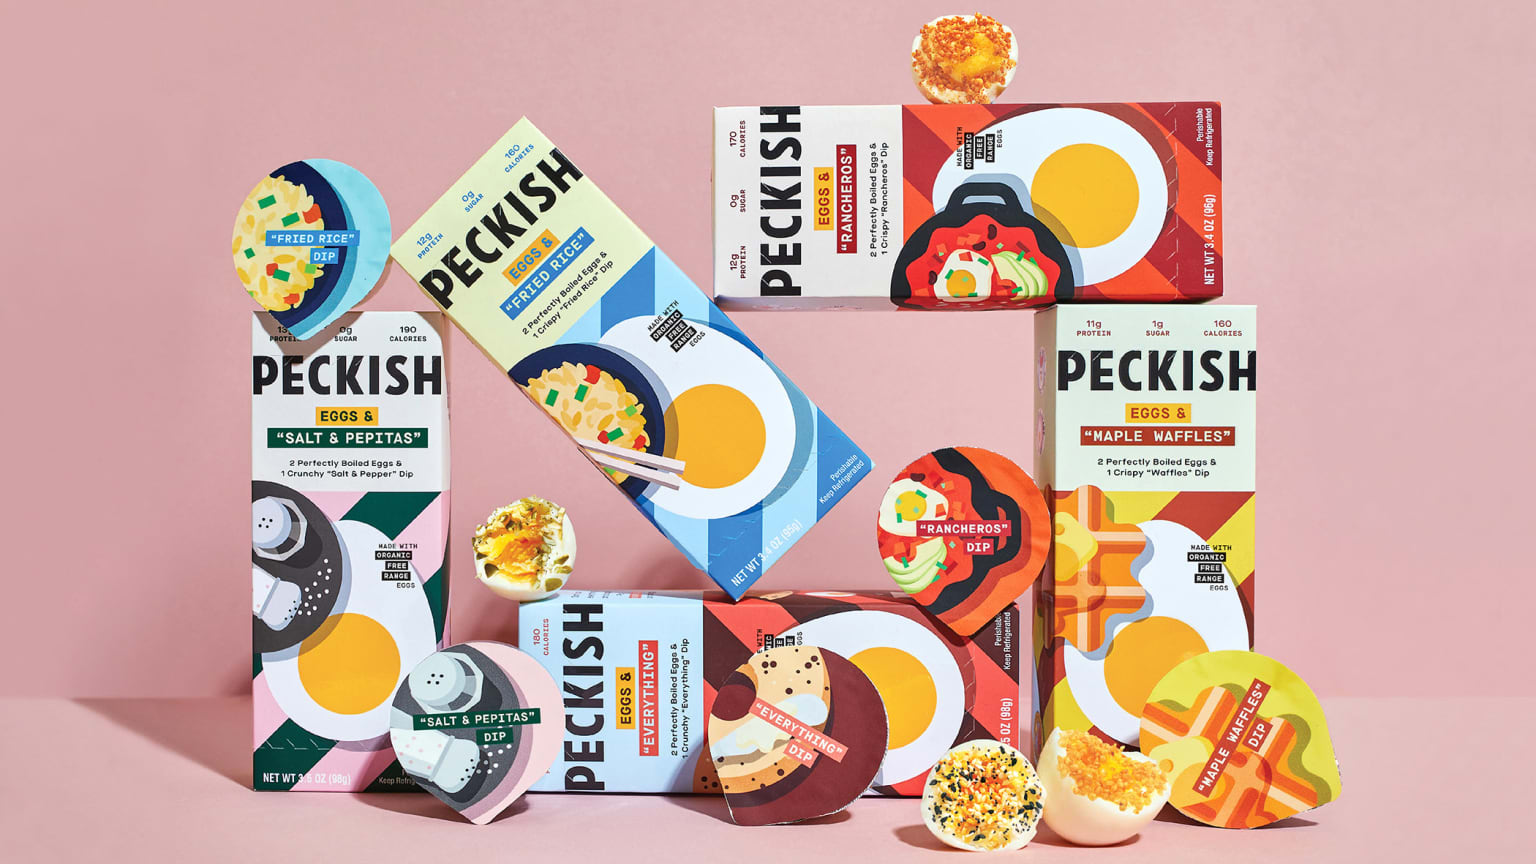 Peckish Branding and Packaging